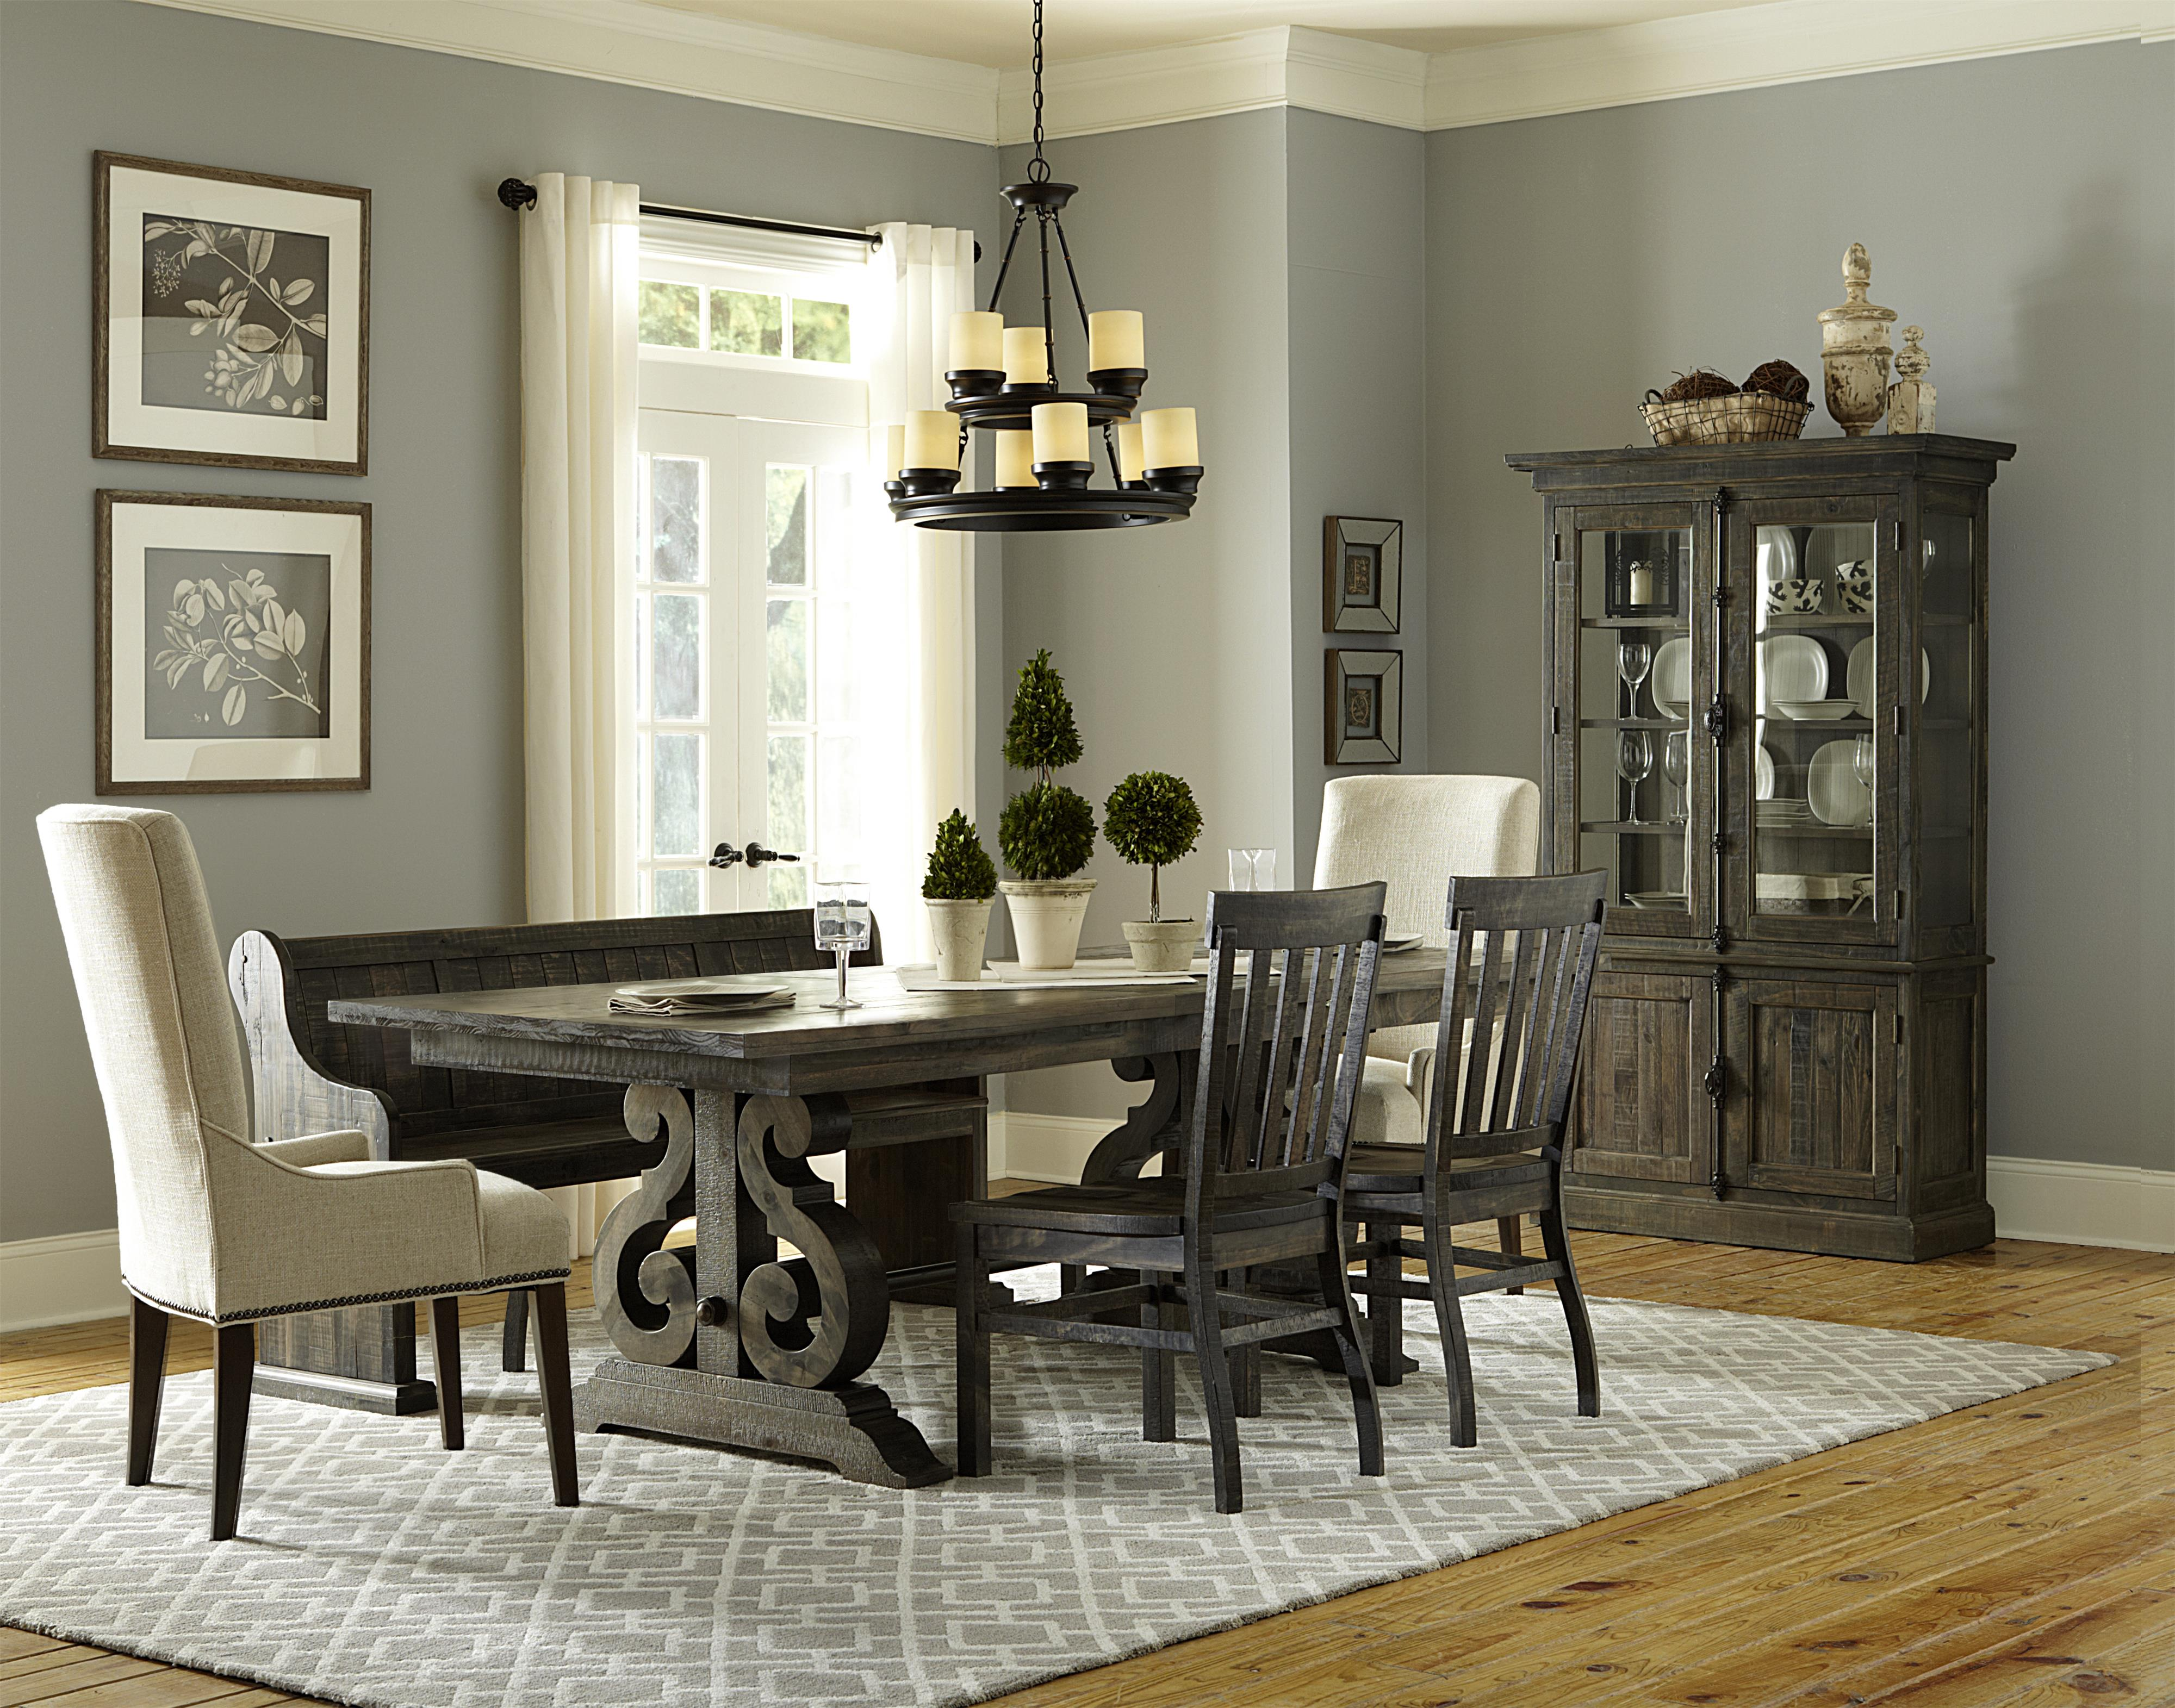 Magnussen Home Bellamy Dining Table, 2 Wood Chairs, 2 Upholstered C - Item Number: MAGN-GRP-D2491-TBL-4BENCH